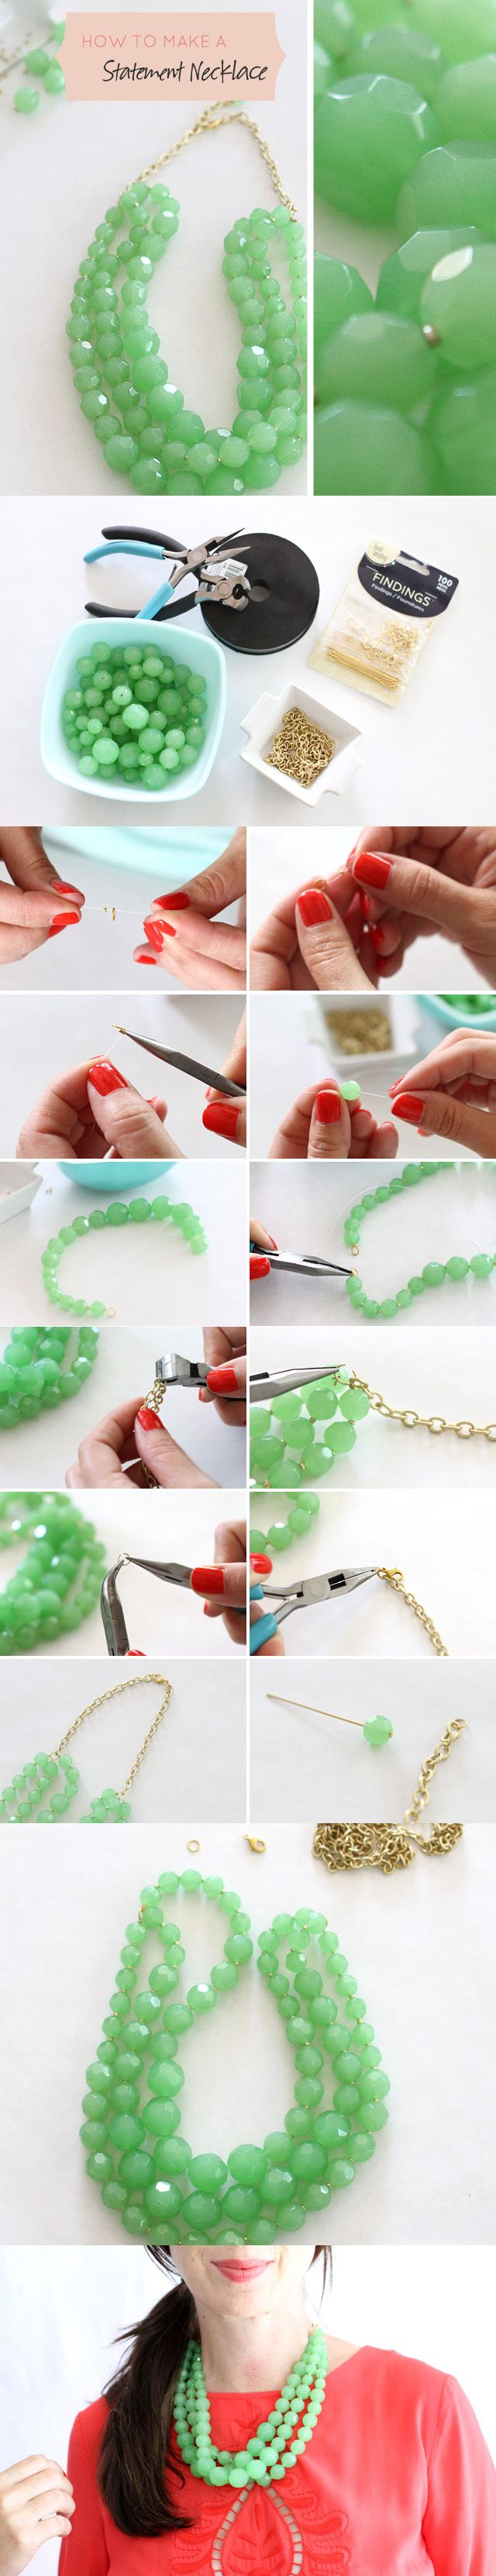 17 useful and pretty diy ideas for necklace fashion diva design diy the most beautiful necklace do it yourself ideas fashion diva design solutioingenieria Gallery